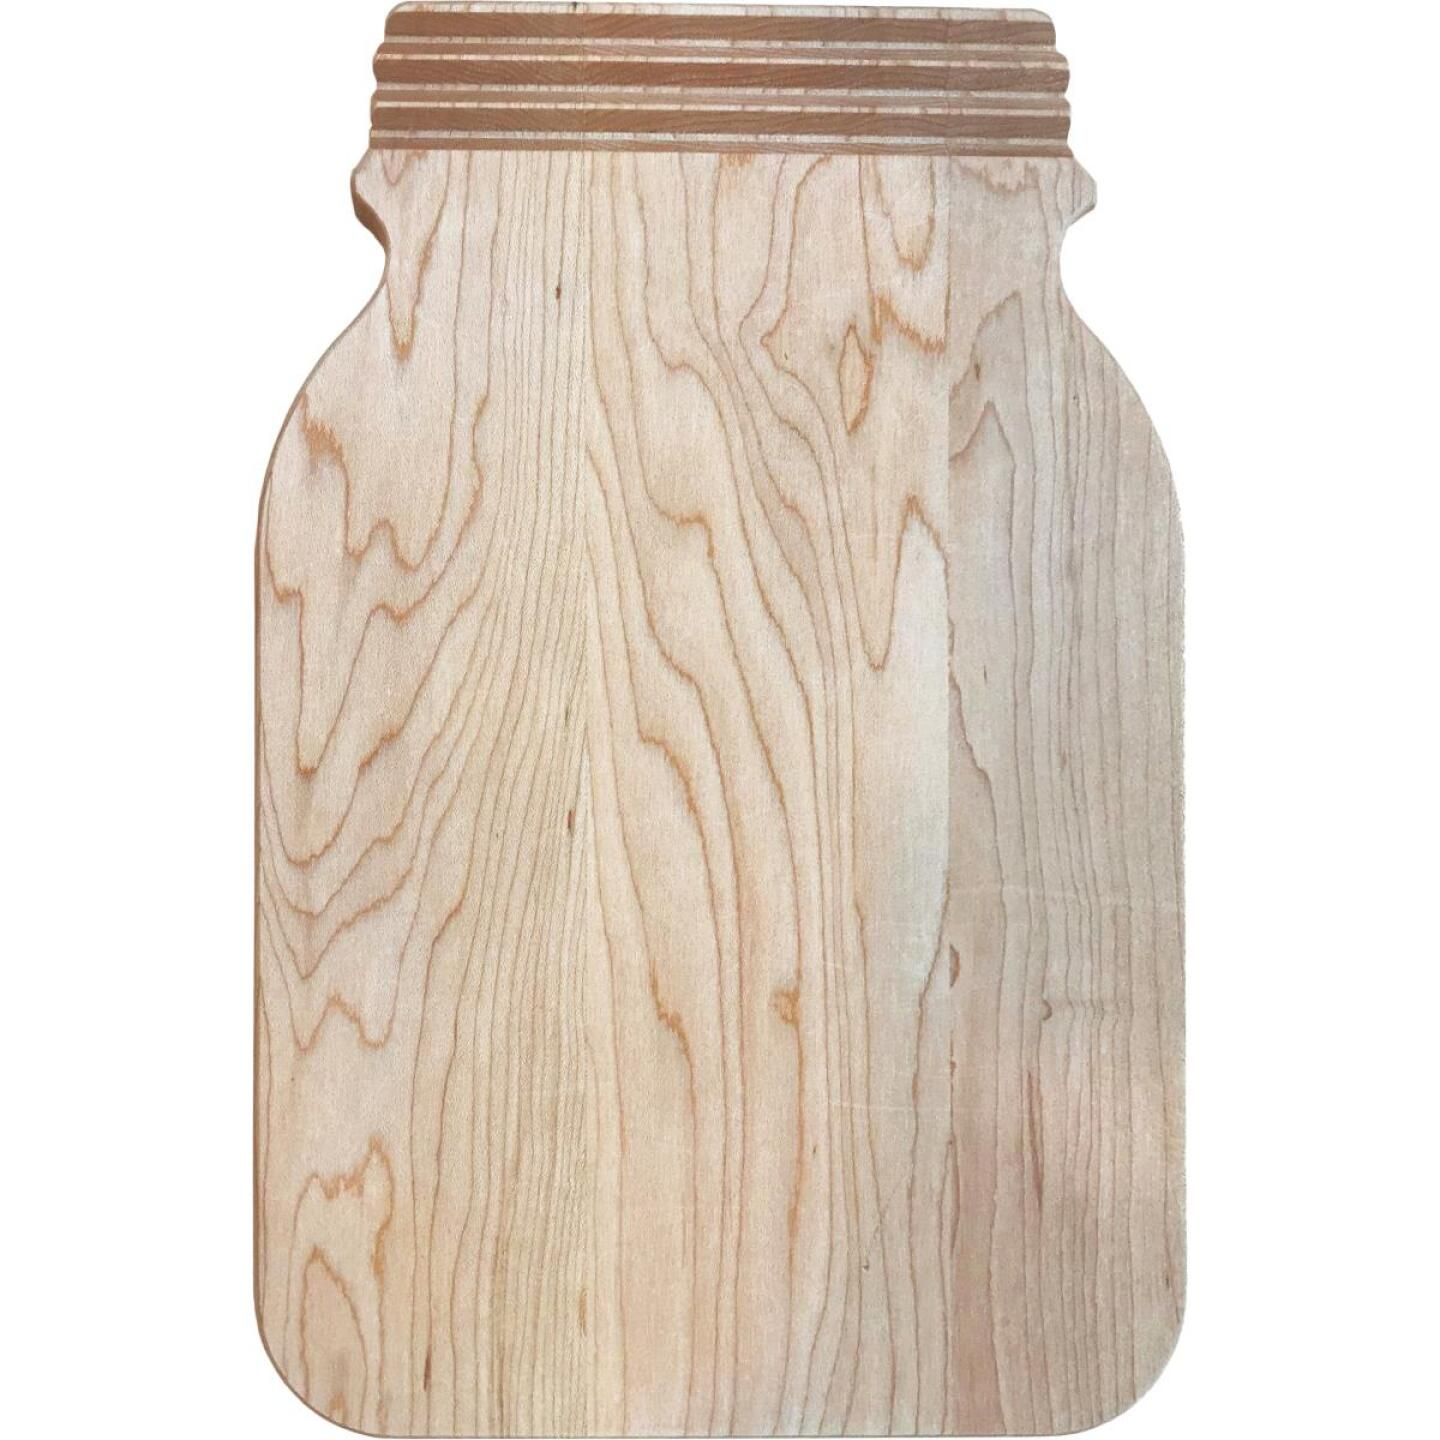 Snow River 8 In. x 12 In. Canning Jar Shape Cutting Board Image 1